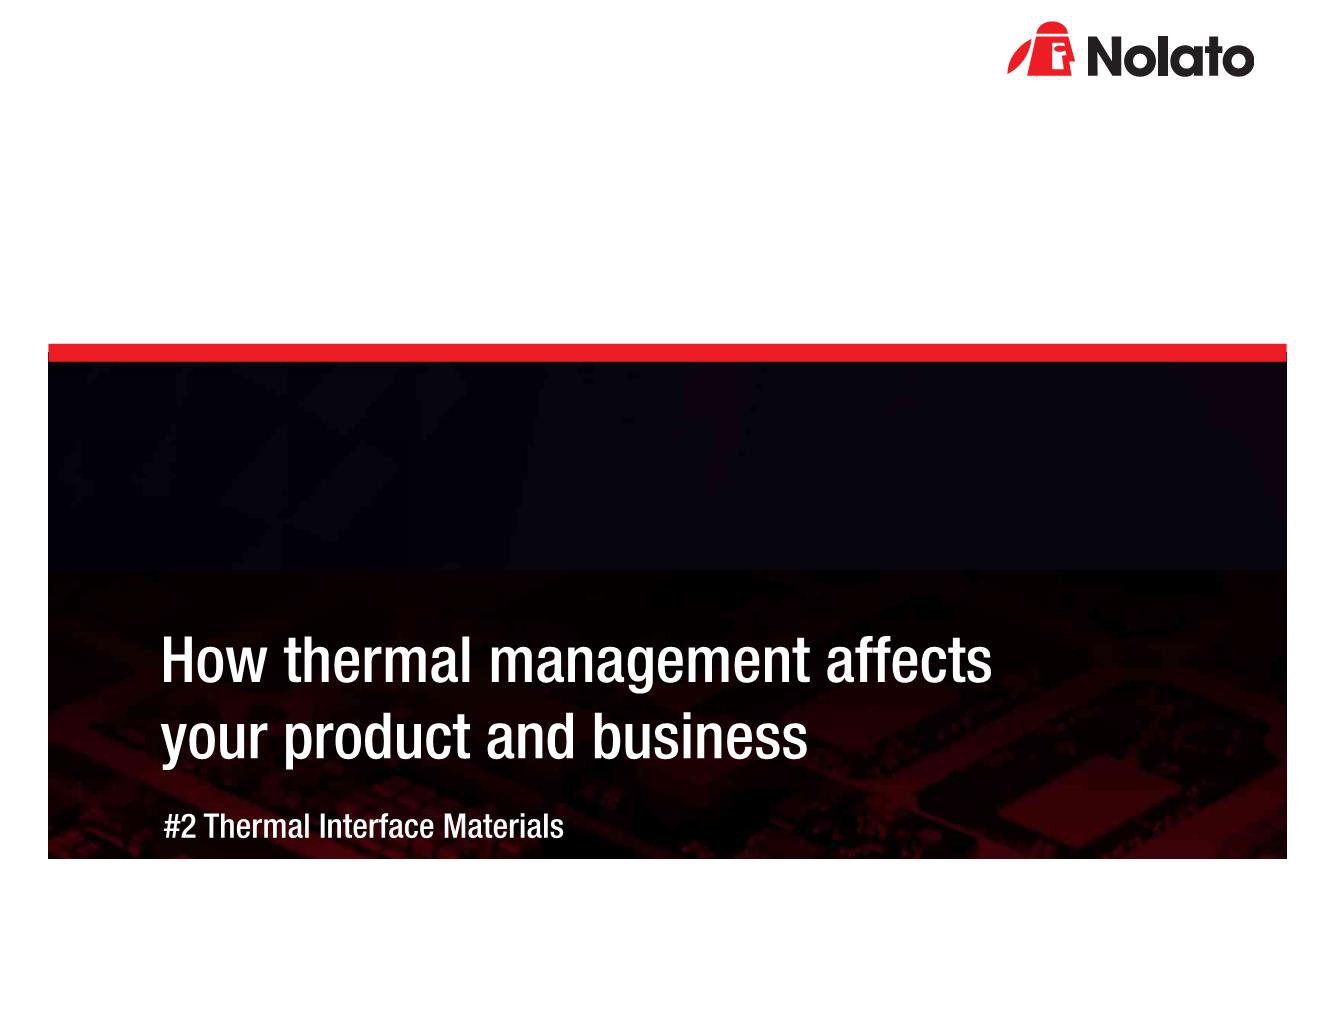 Nolato - How Thermal Management Affects Your Product and Business - White Paper #1